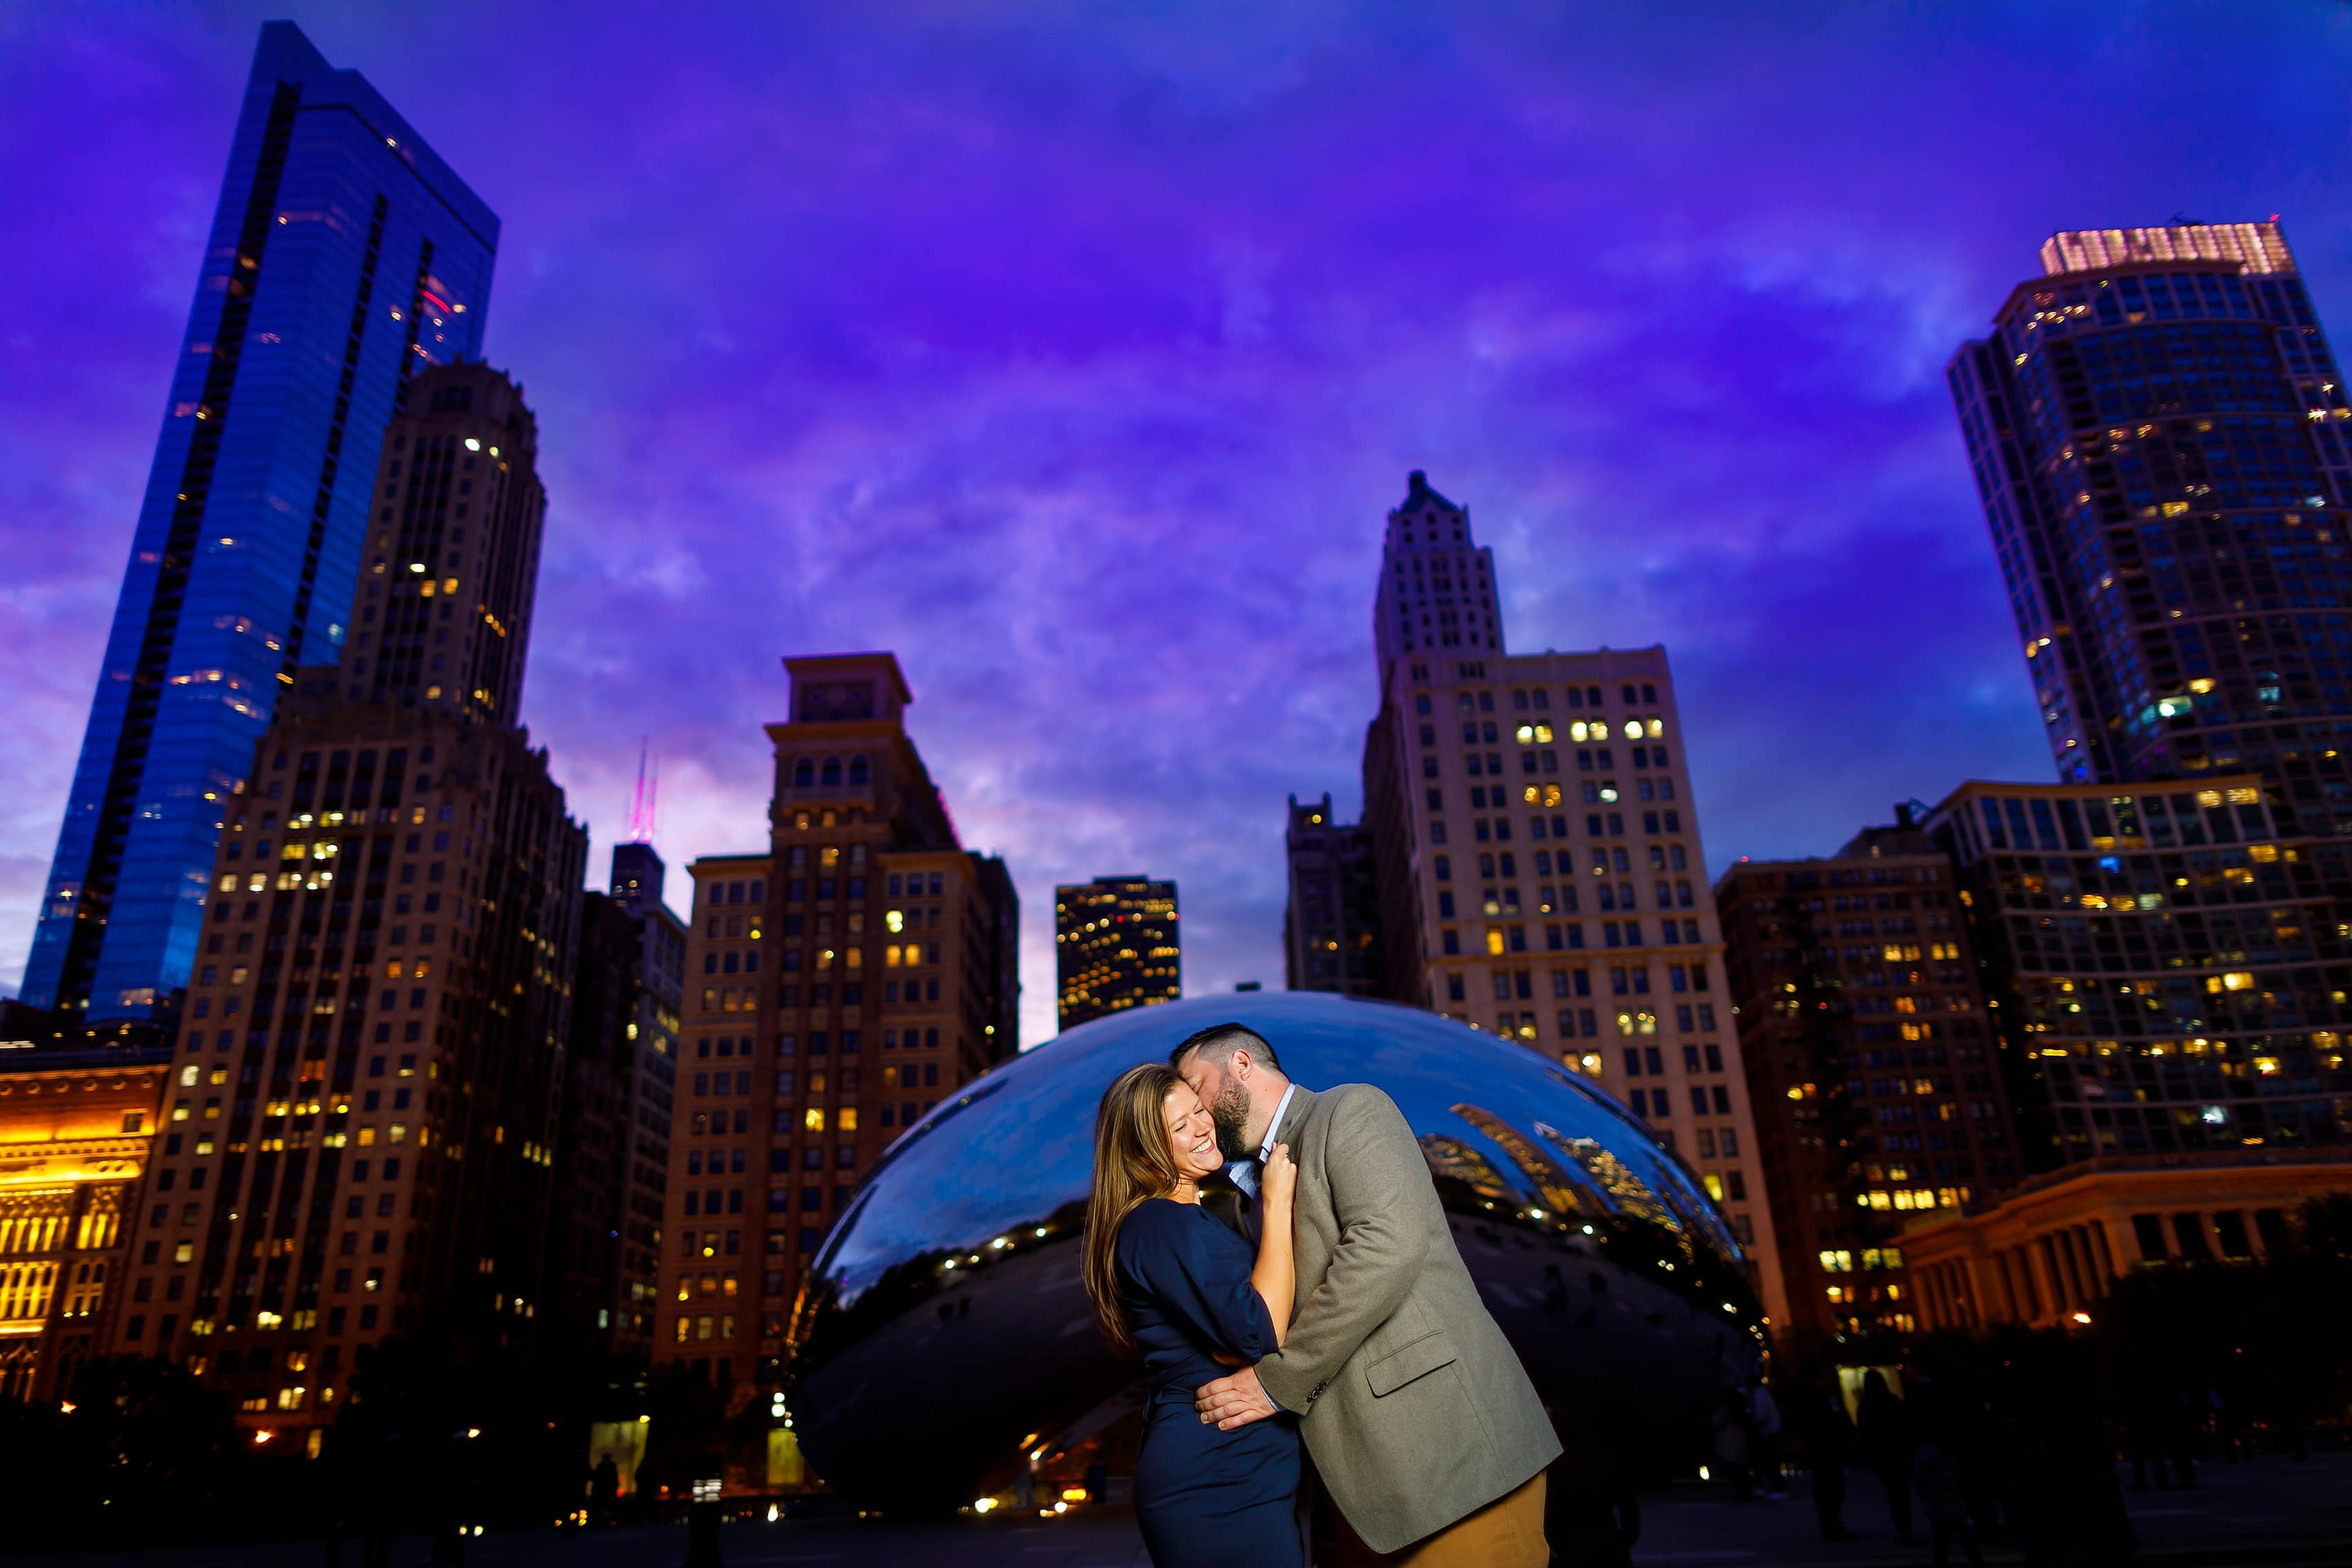 couple kisses during engagement session at Millennium Park with Cloudgate The Bean statue in the background and Chicago skyline